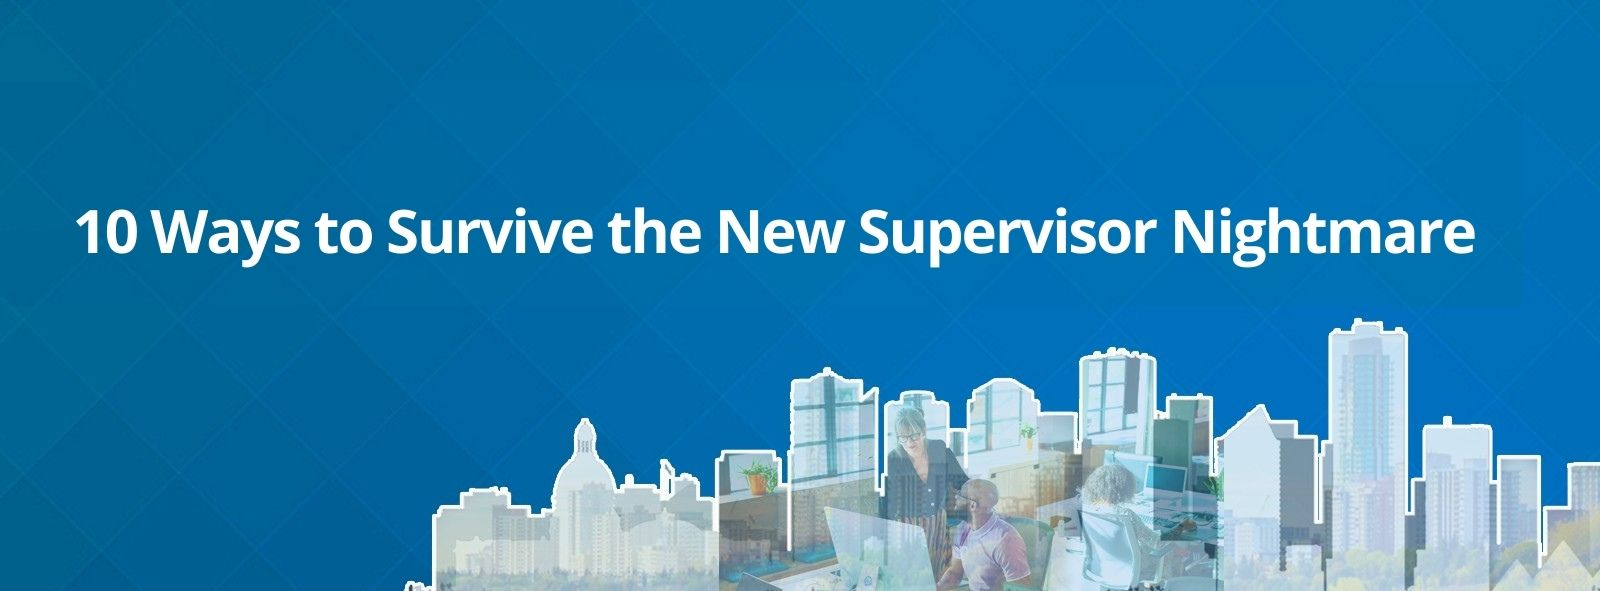 10 Ways to Survive the New Supervisor Nightmare